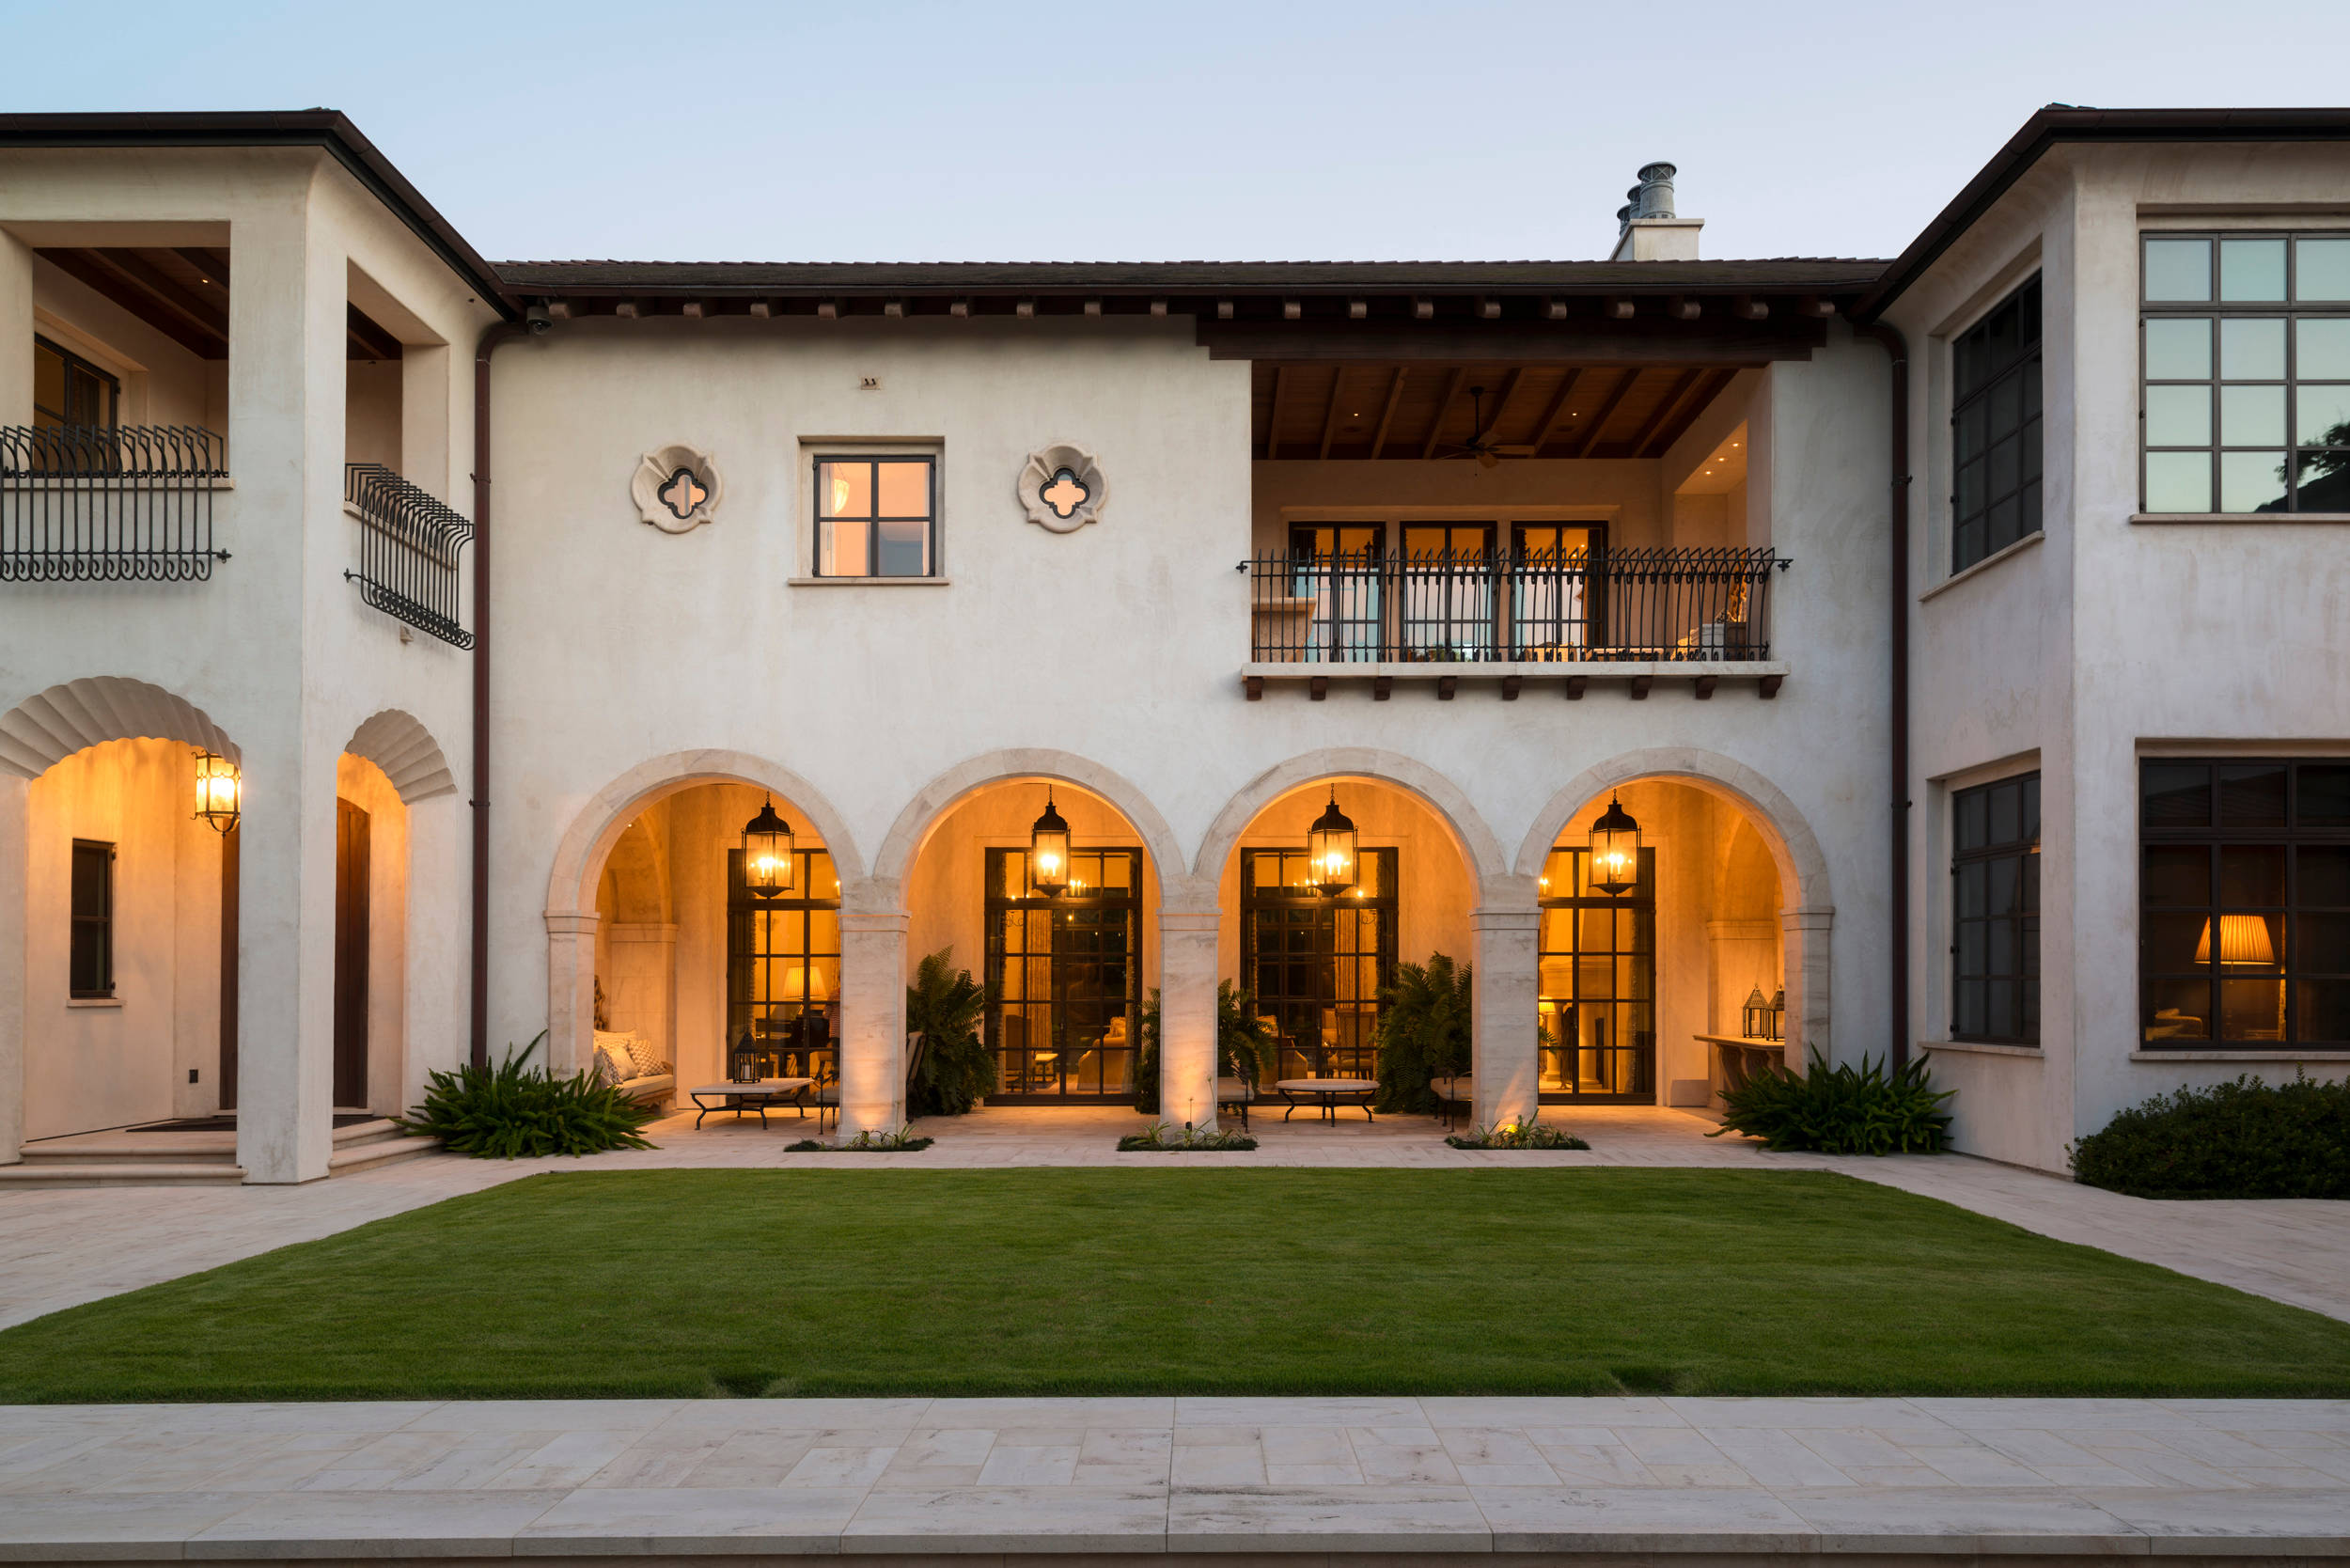 15 exceptional mediterranean home designs you 39 re going to fall in love with part 2 Mediterranean home design ideas